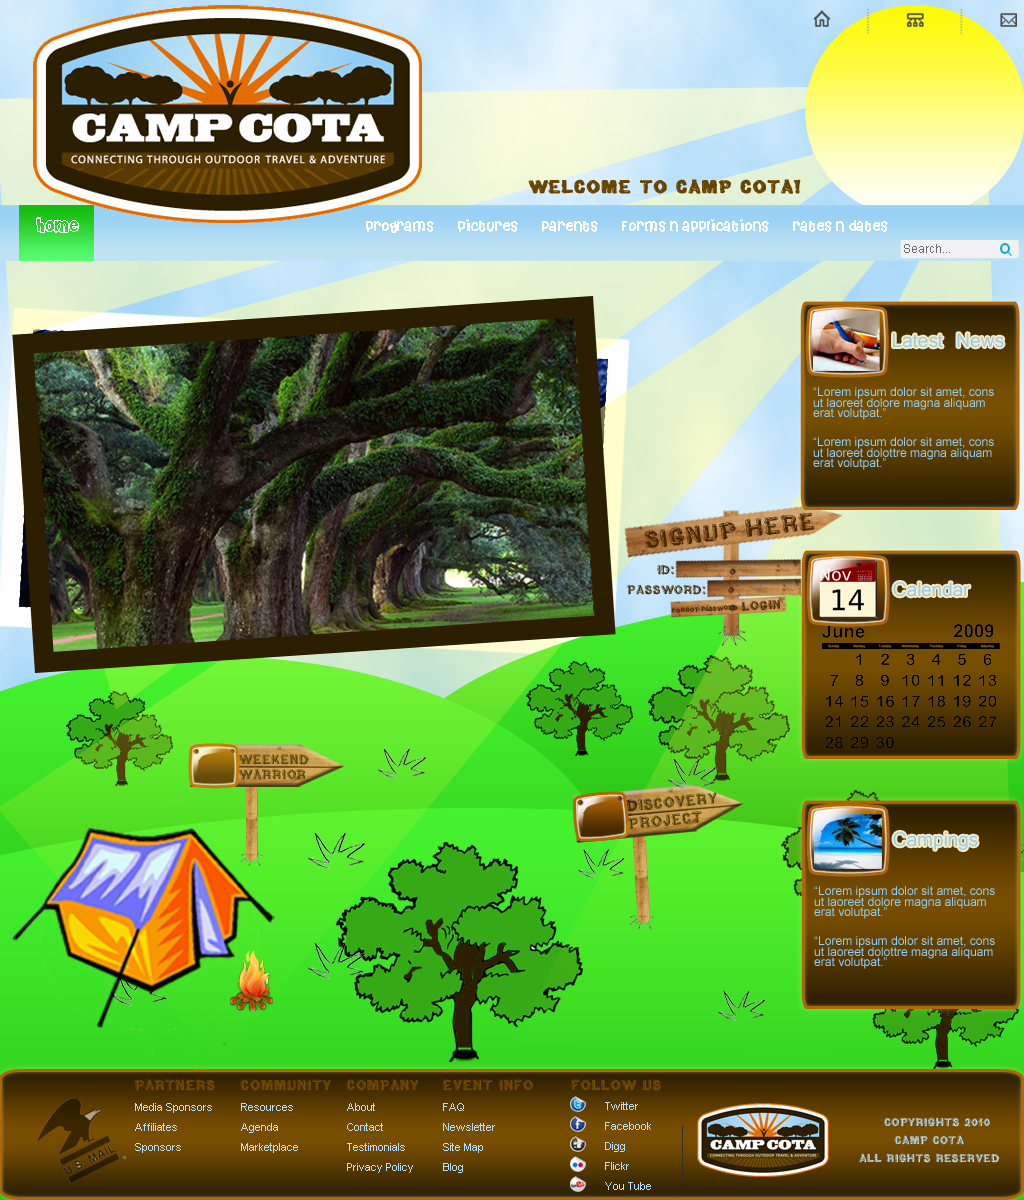 Web Page Design by Geniye - Entry No. 25 in the Web Page Design Contest Camp COTA - Clean, Crisp Design Needed.